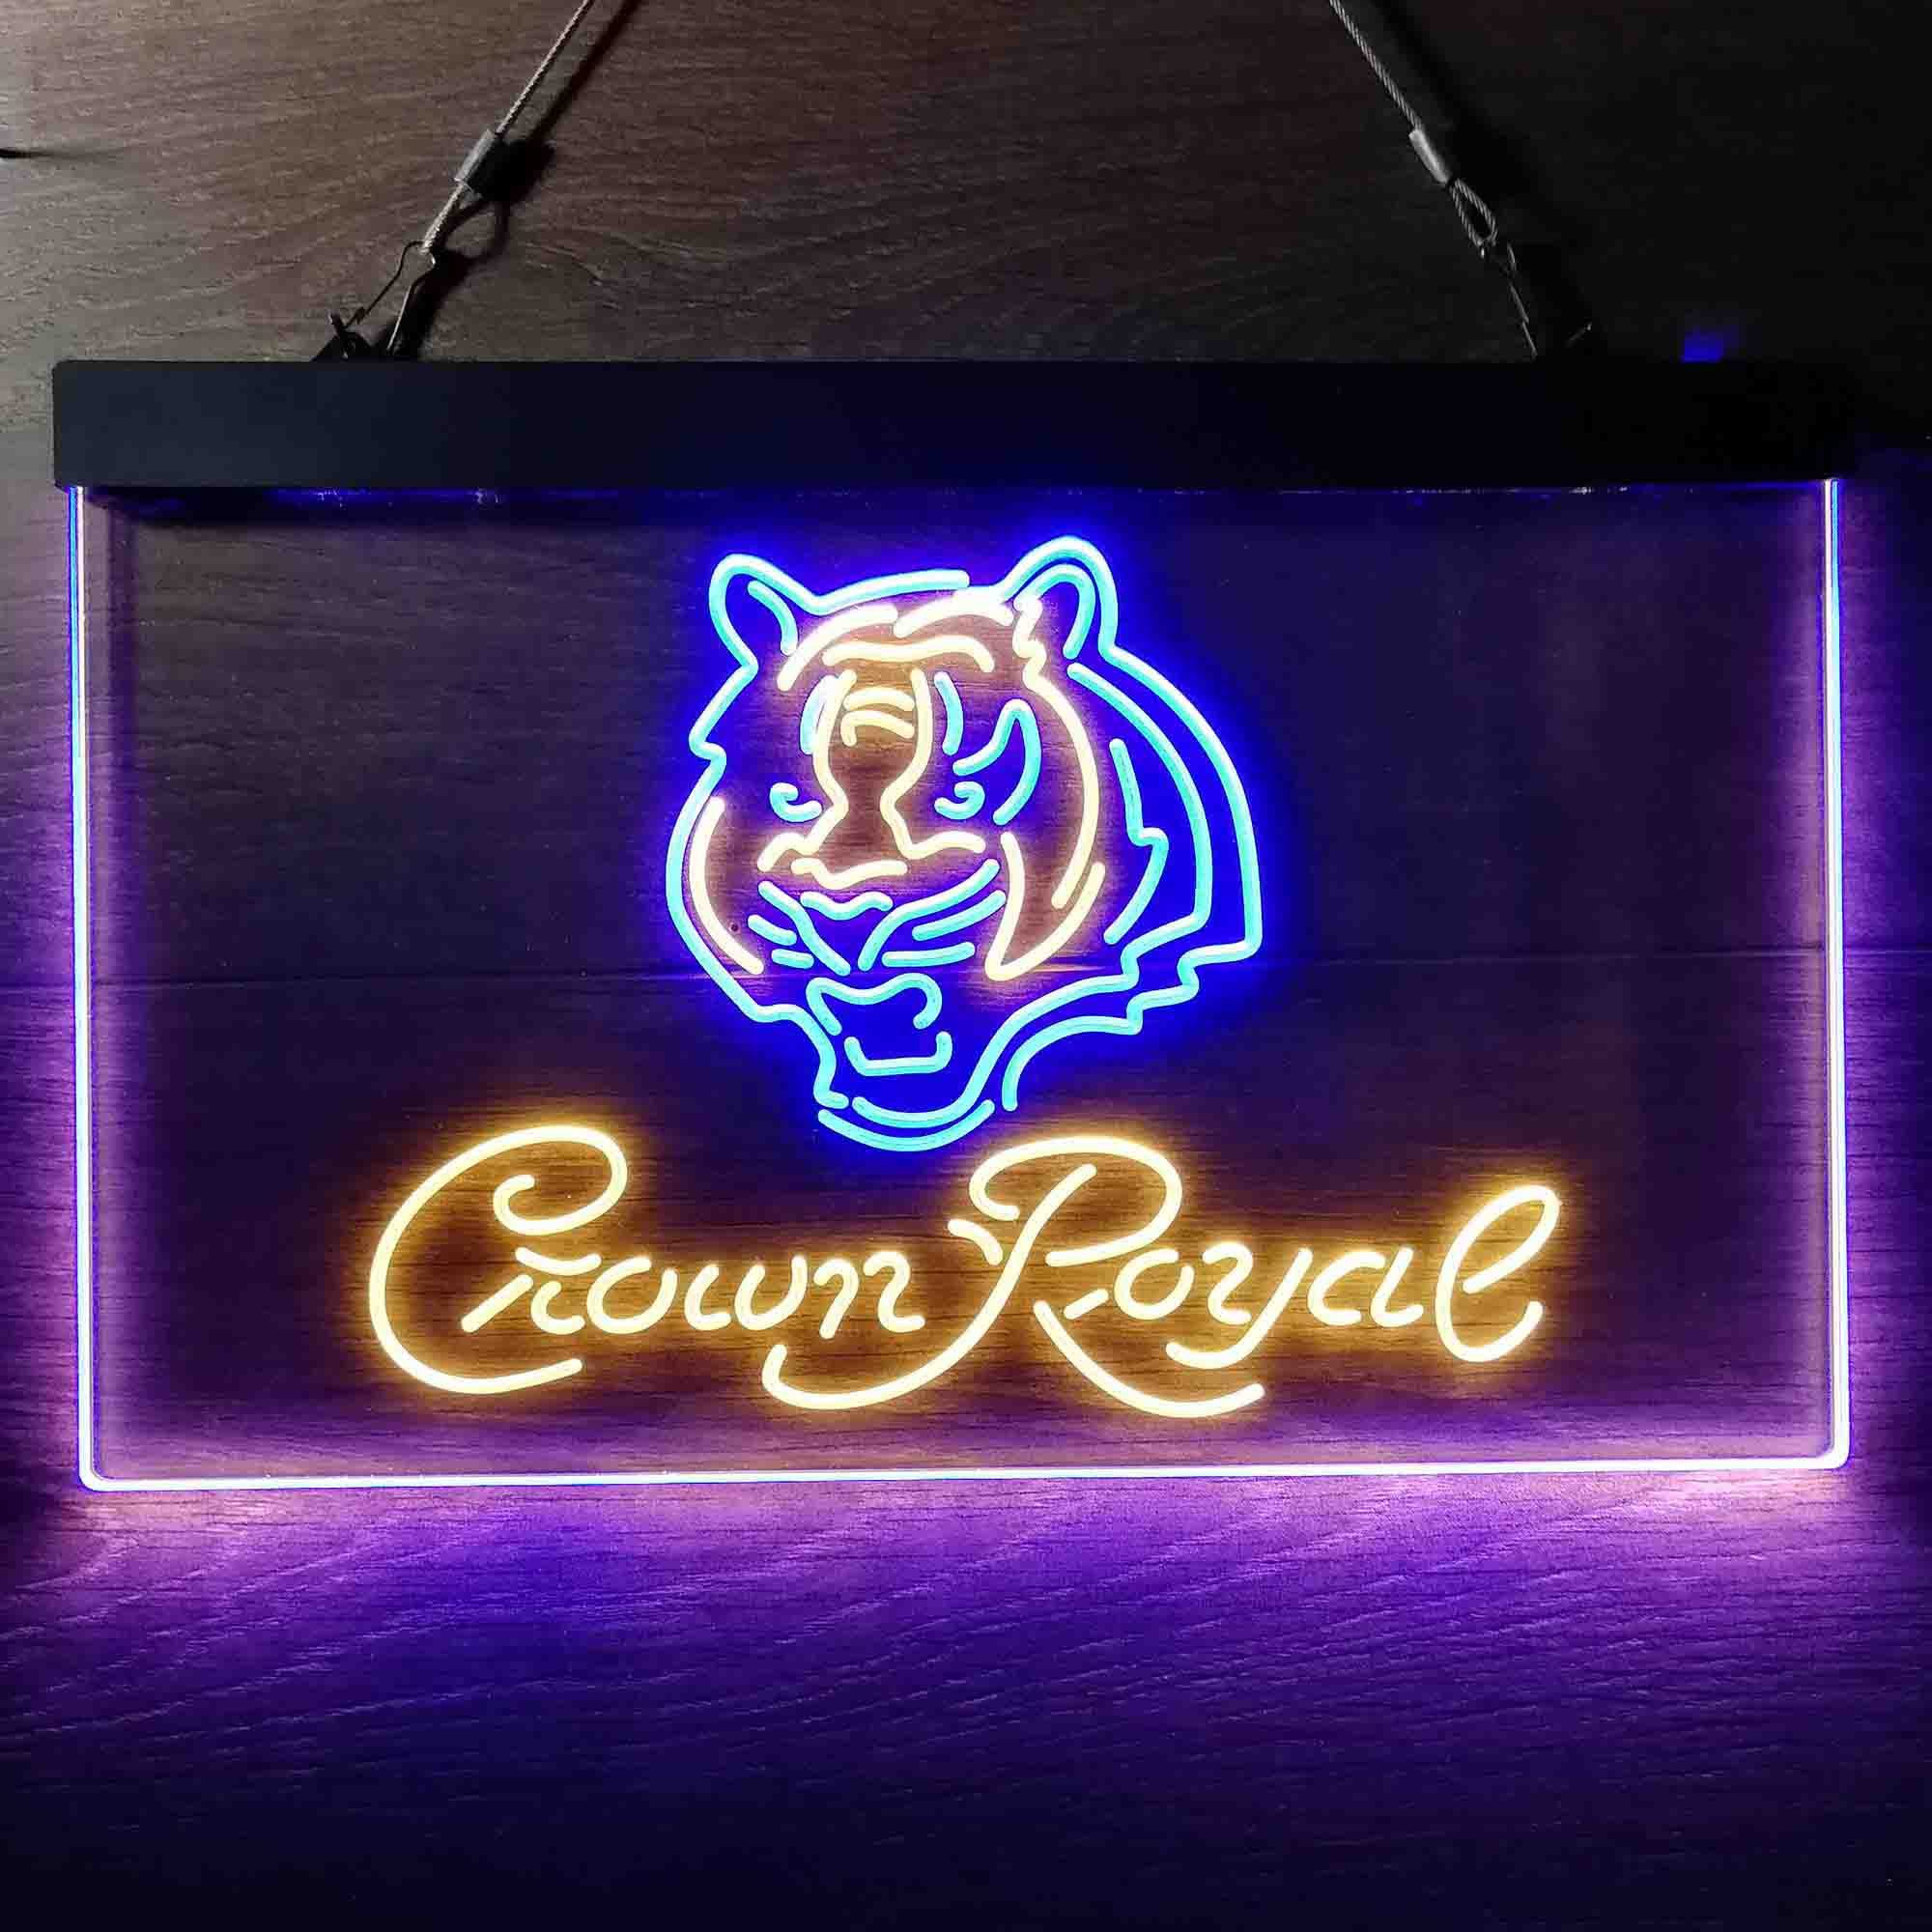 Crown Royal Bar Cincinnati Bengals Est. 1968 Neon-Like LED Sign